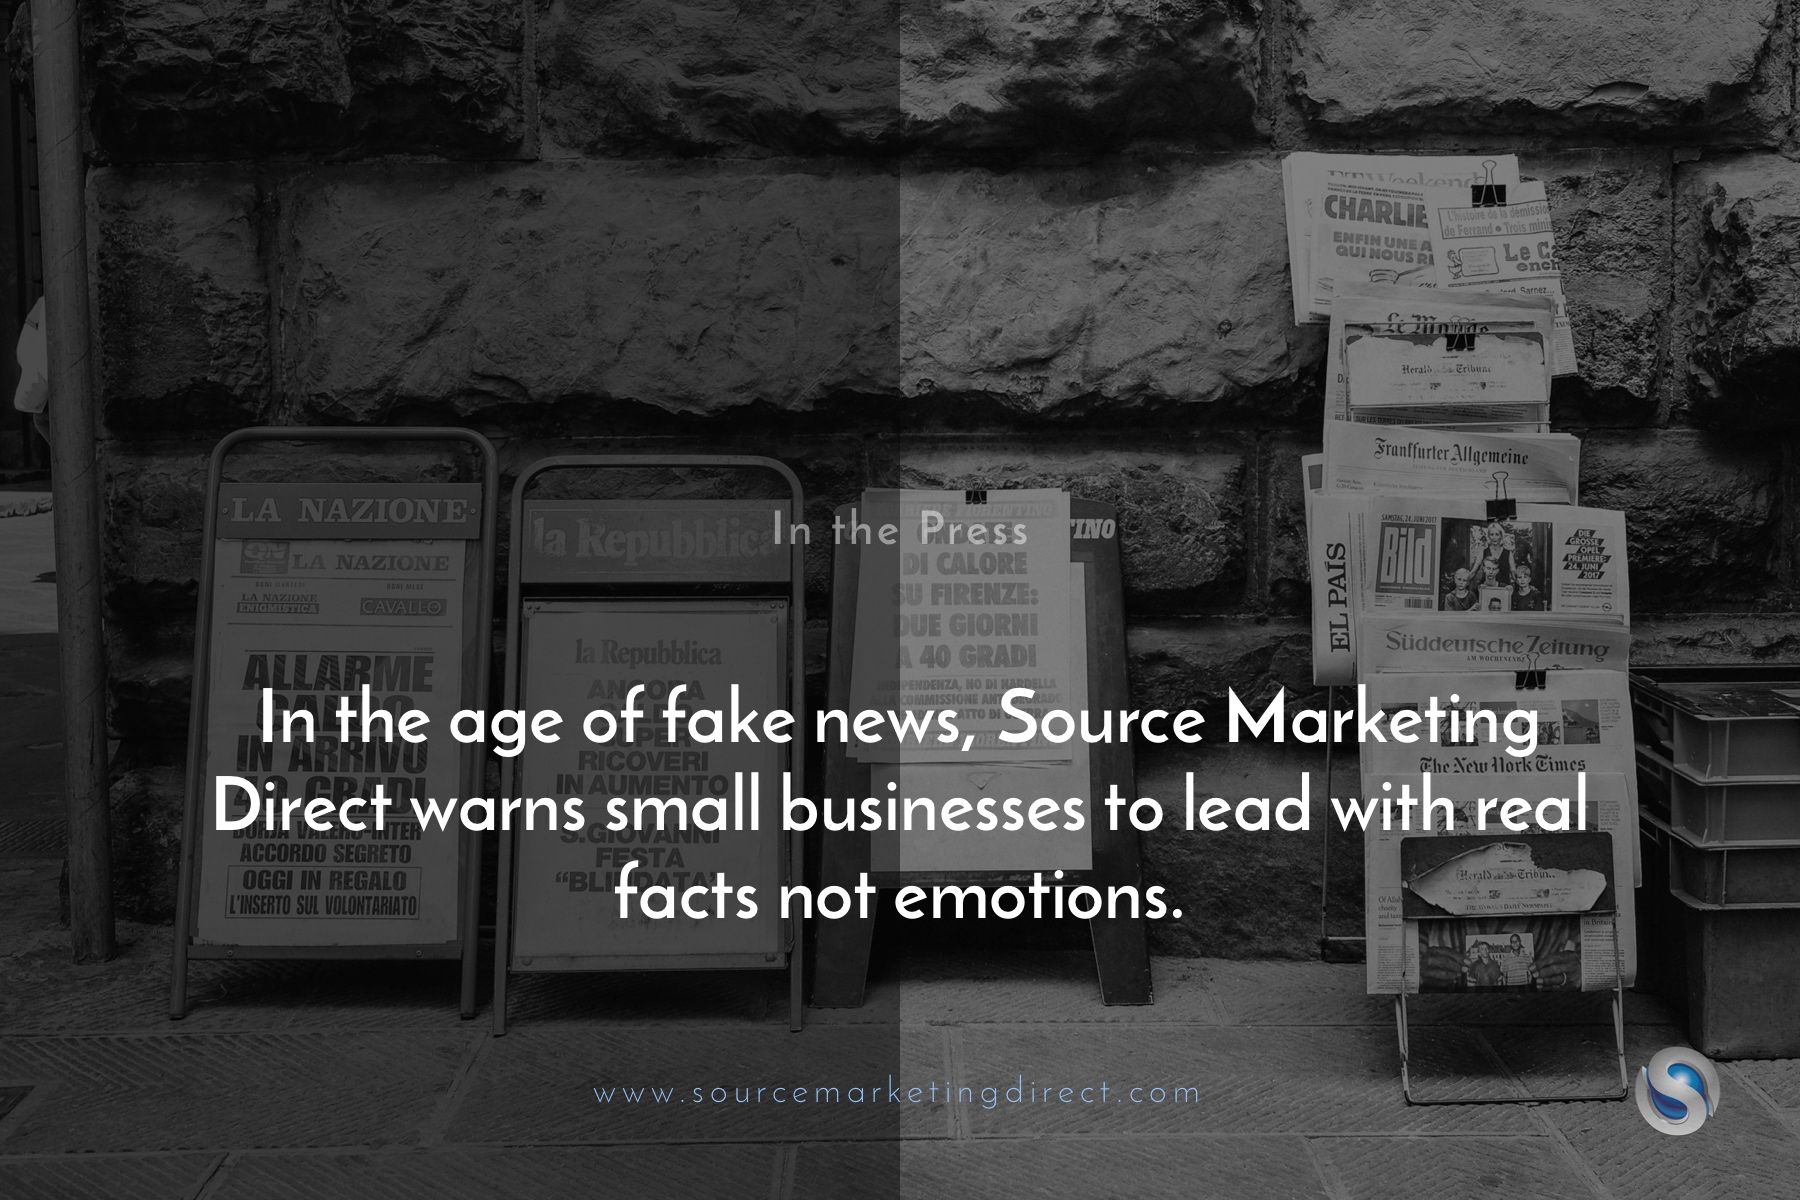 In the age of fake news, Source Marketing Direct warns small businesses to lead with real facts not emotions.